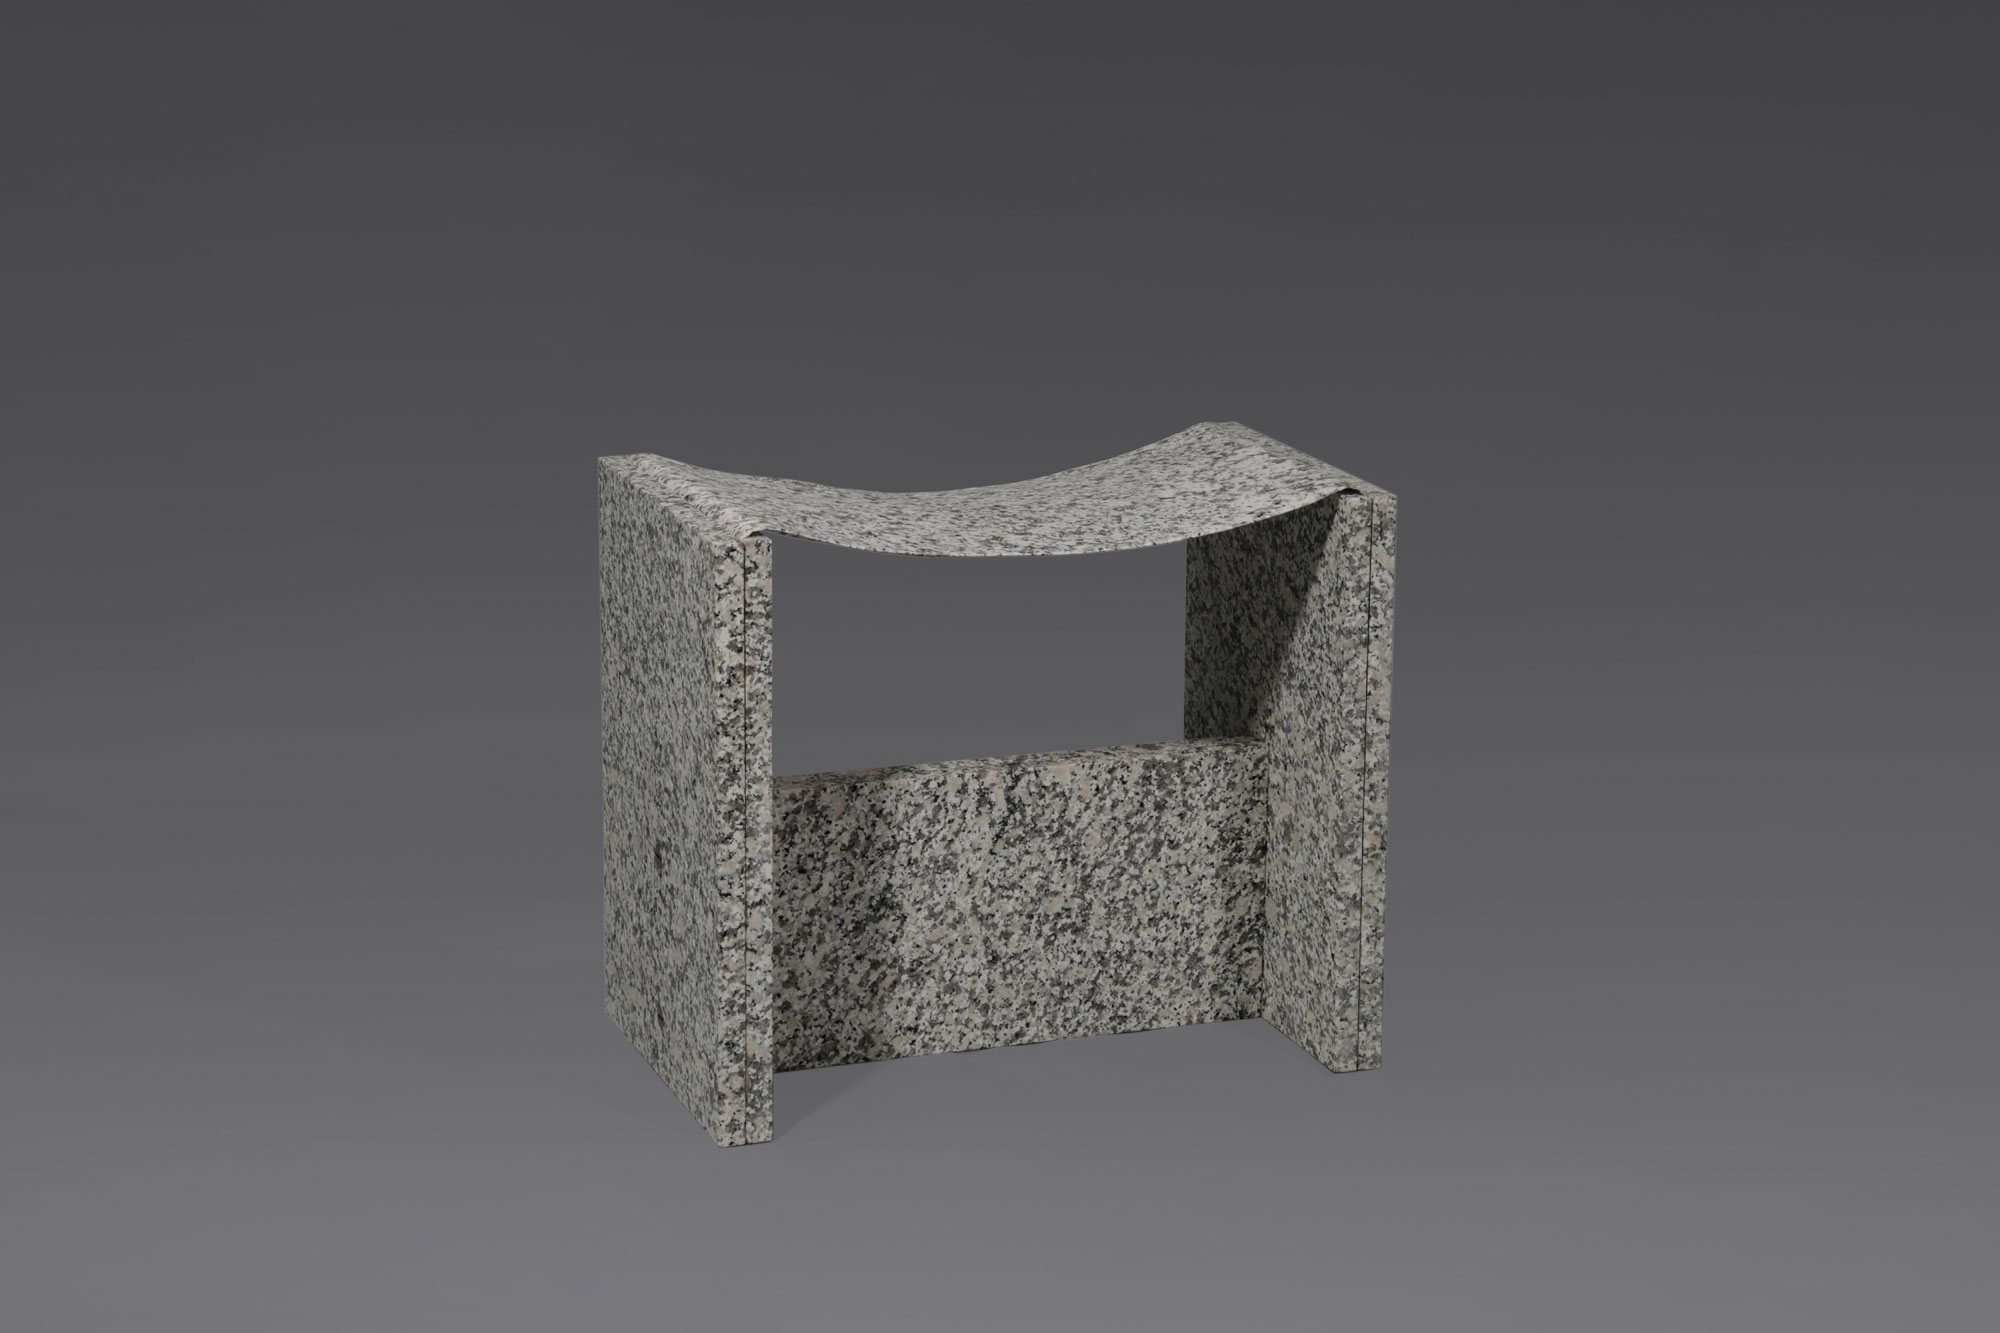 04_GraniteSlingBench2_SoftHard_SoftBaroque_EtageProjects_for-web.jpg